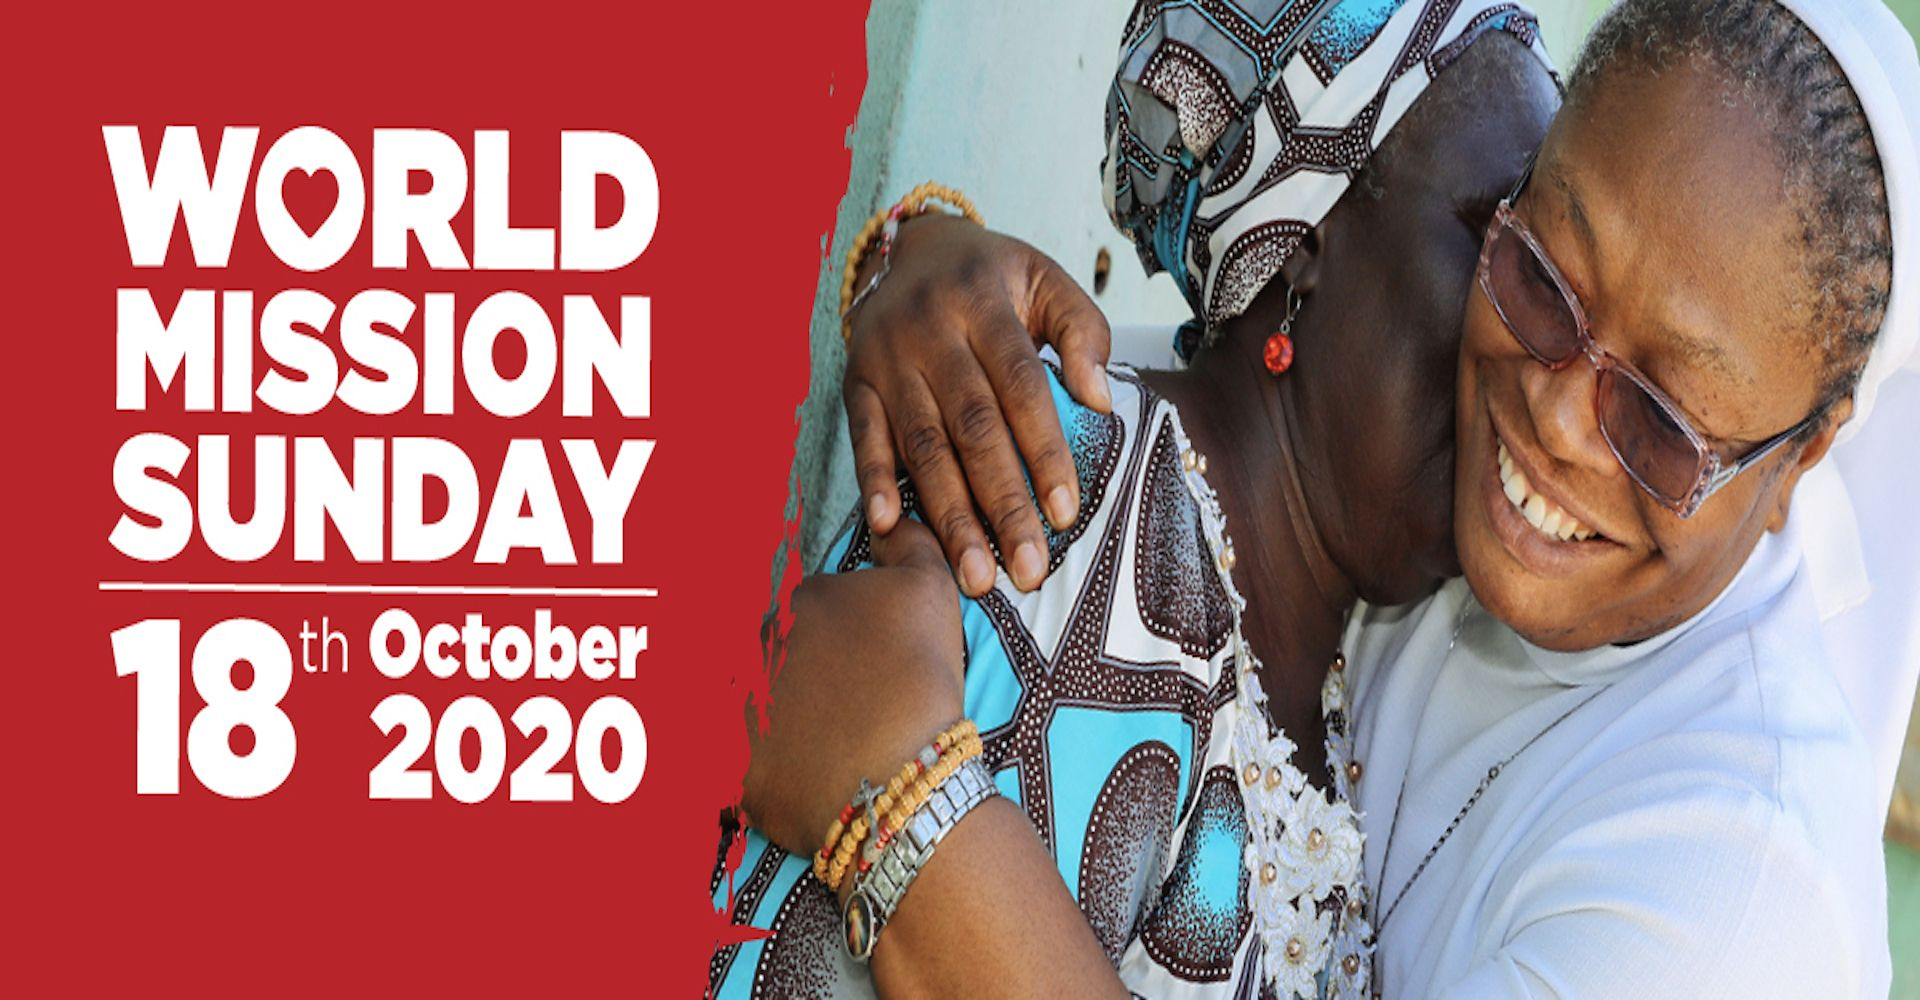 October Month of the Missions...World Mission Sunday October 18th 2020